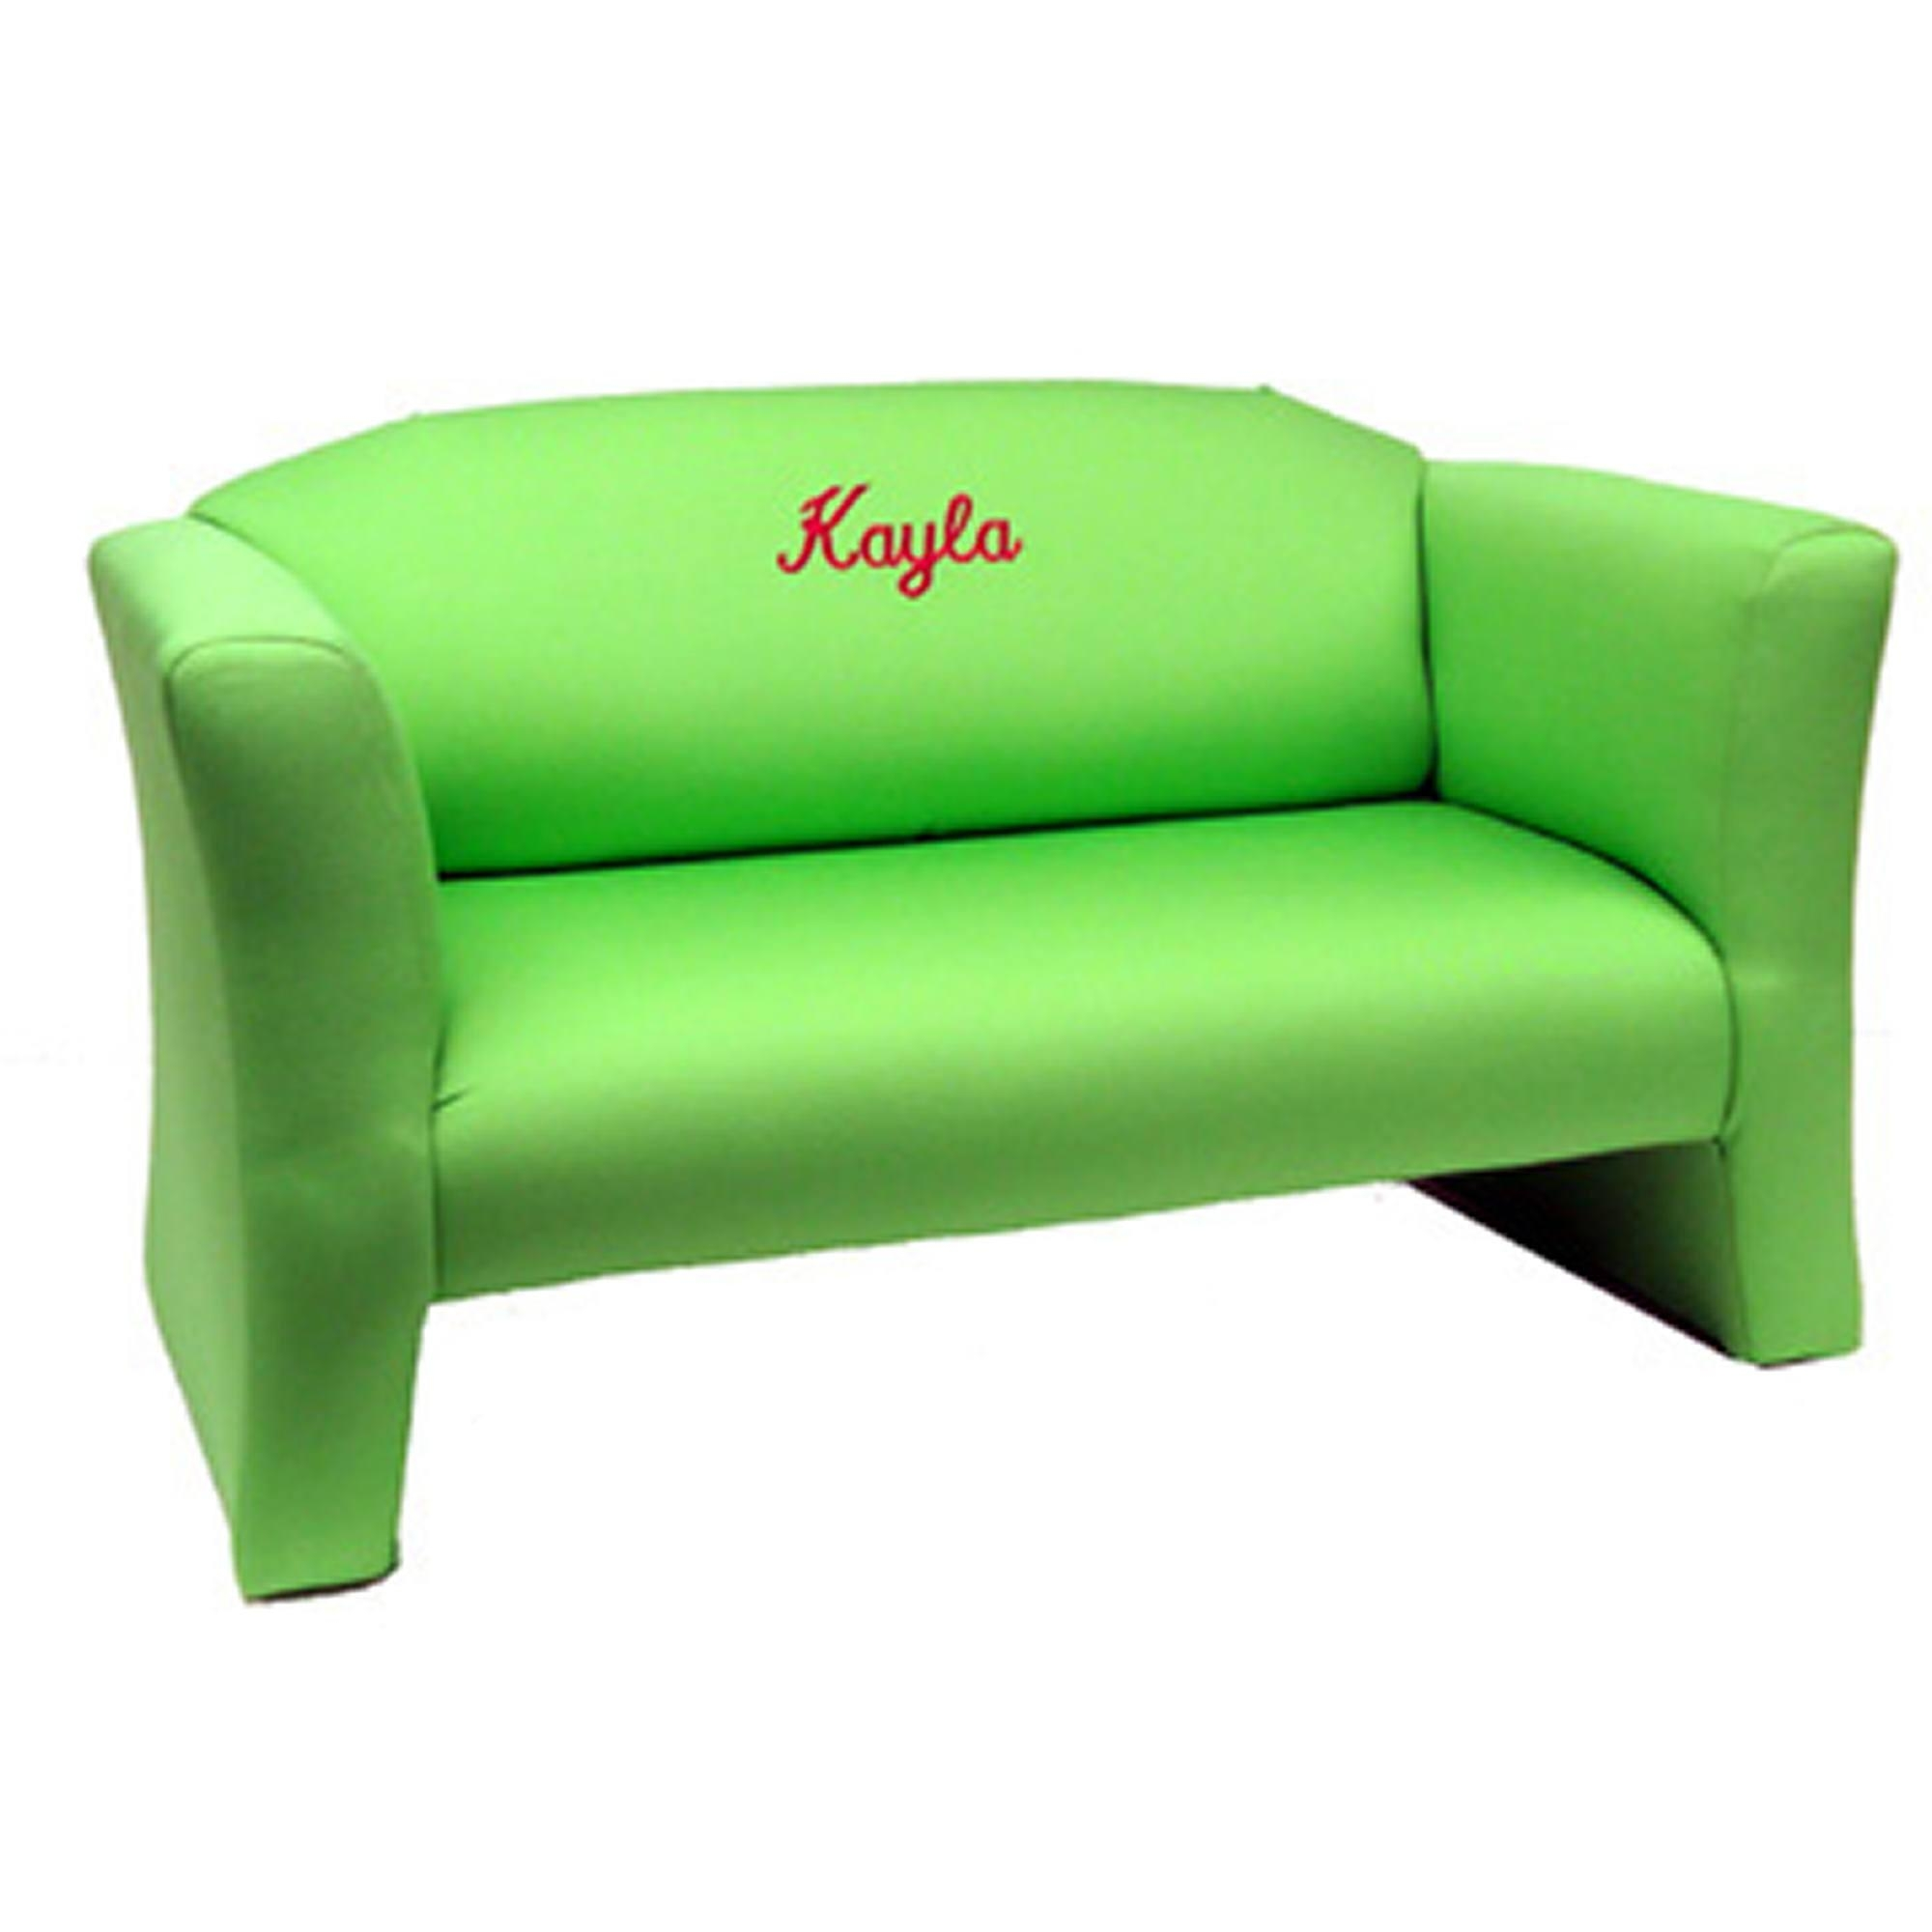 Personalized Kid's Queen Anne Sofa | Kids Couches In Personalized Kids Chairs And Sofas (View 17 of 20)